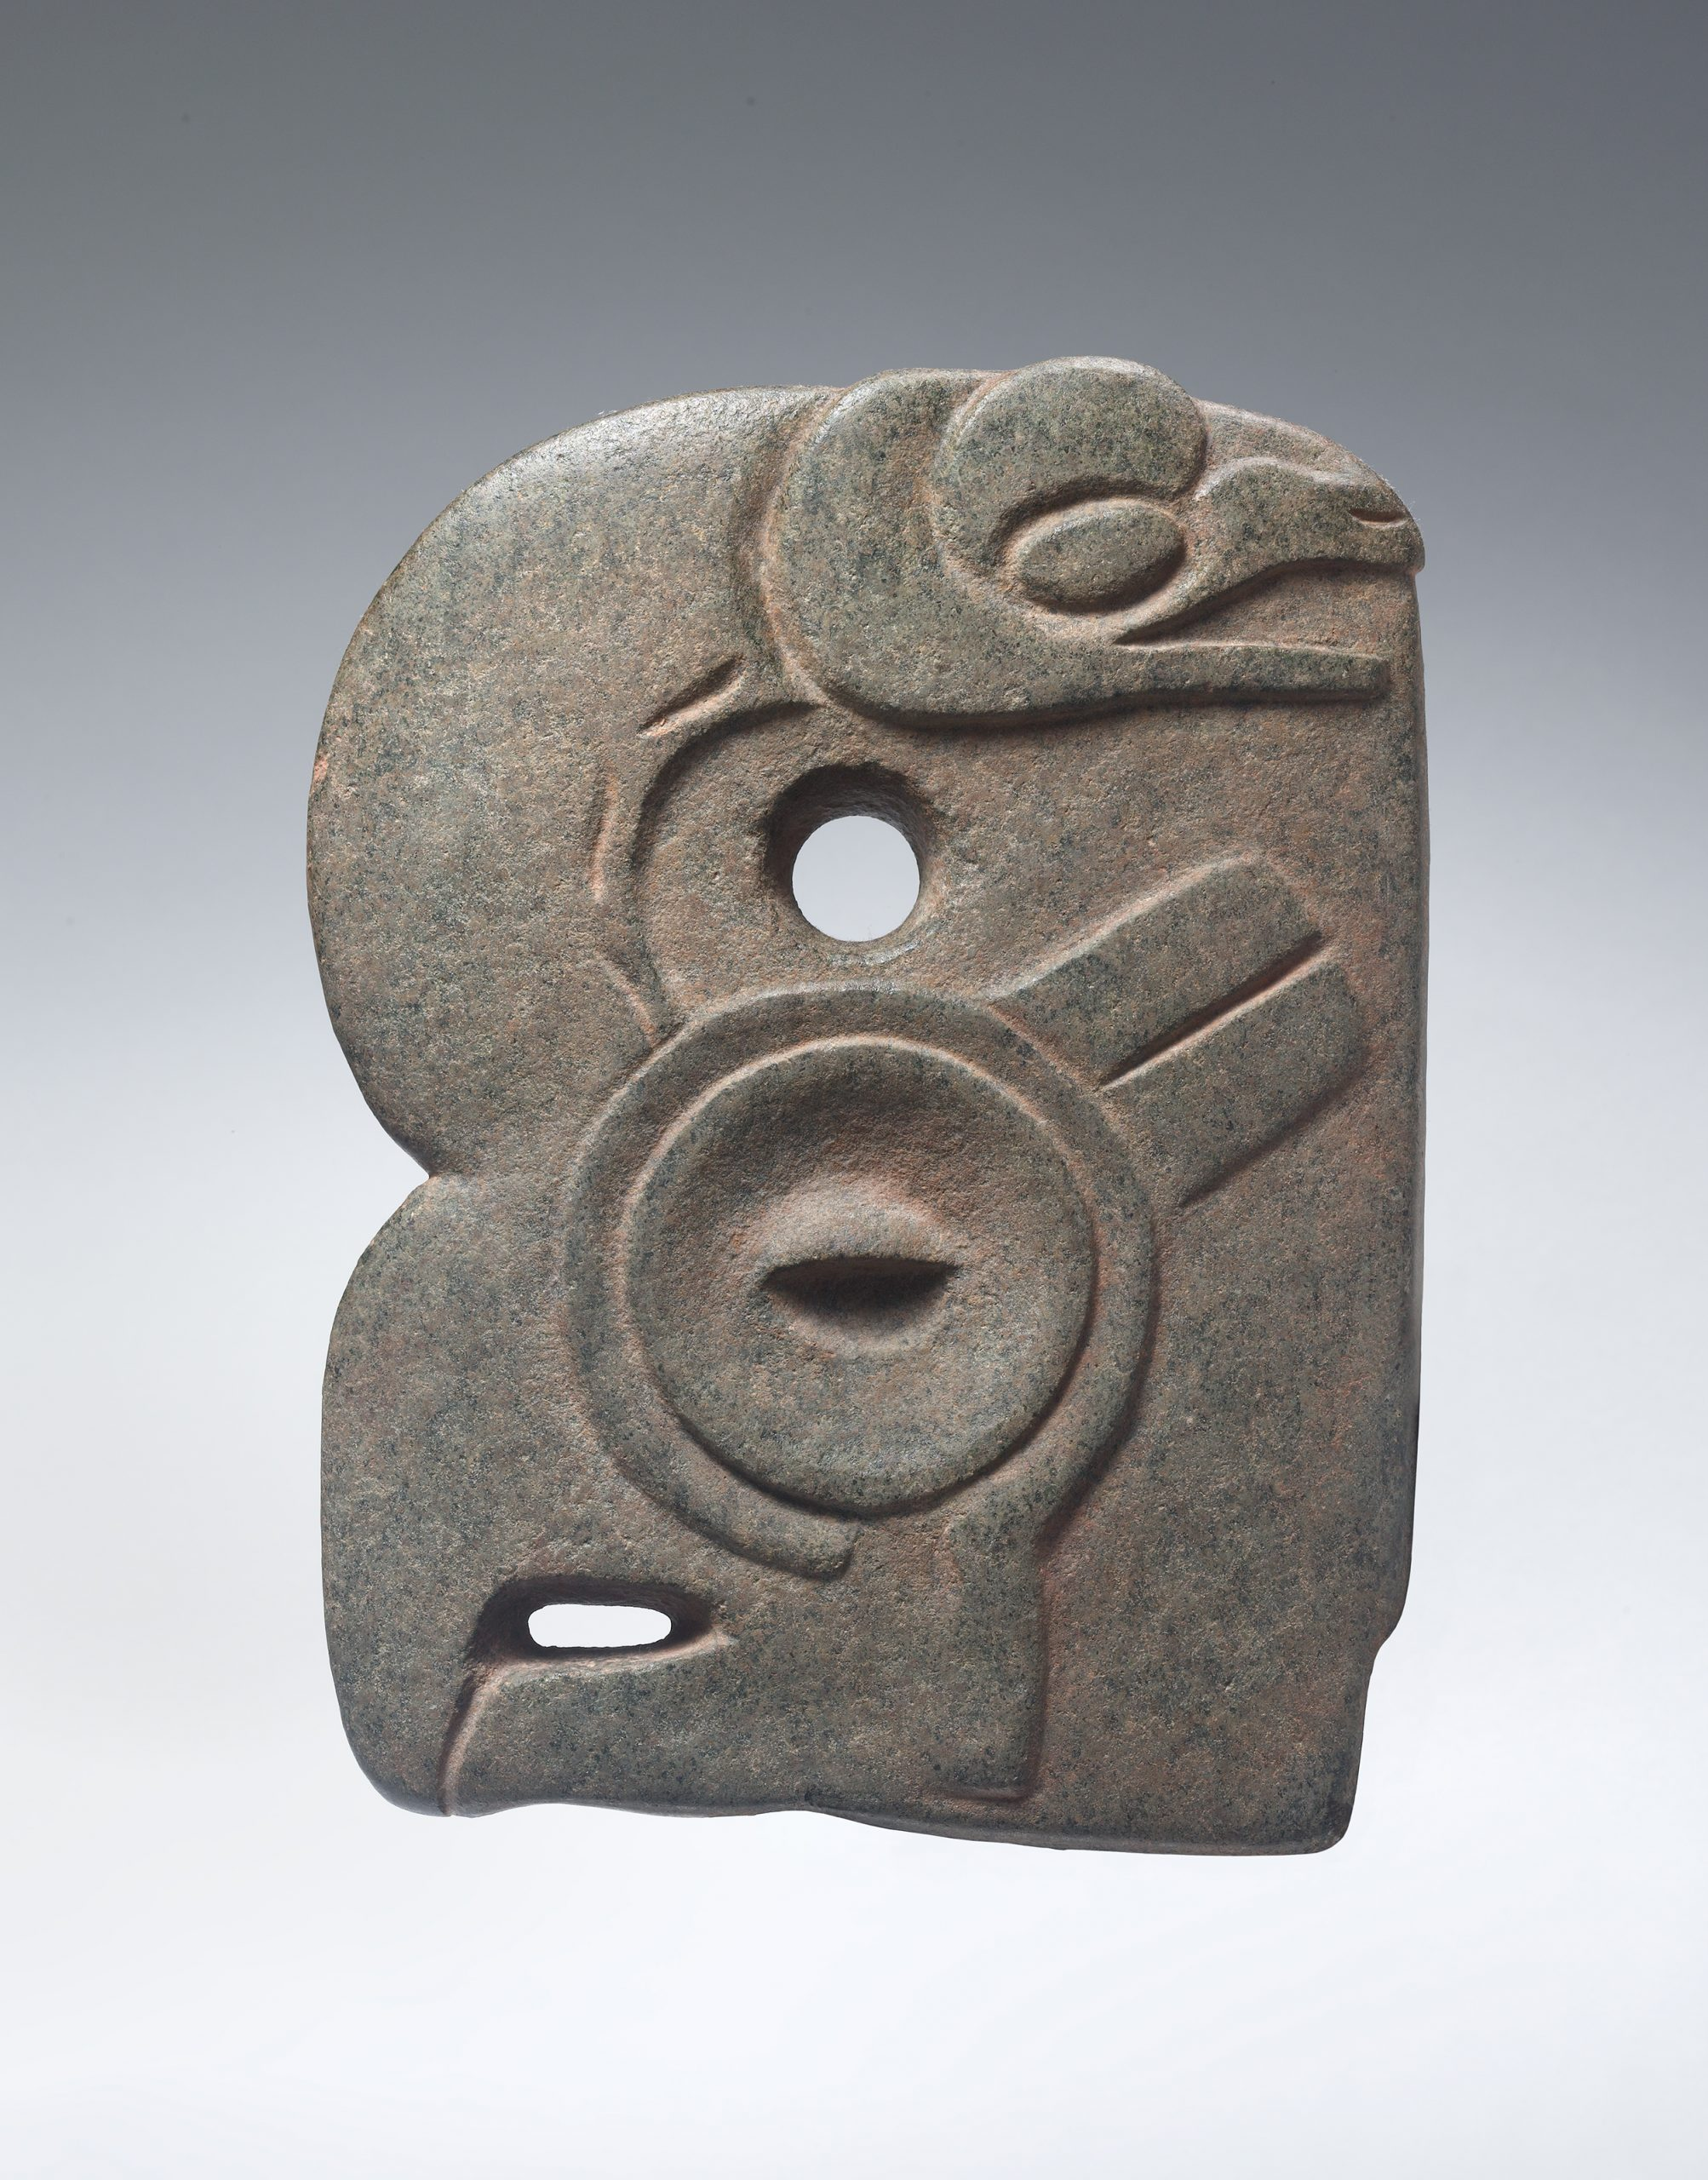 Small abstract stone figure with indented facial features features, a large pointed nose, and arms resting on its mid-section.